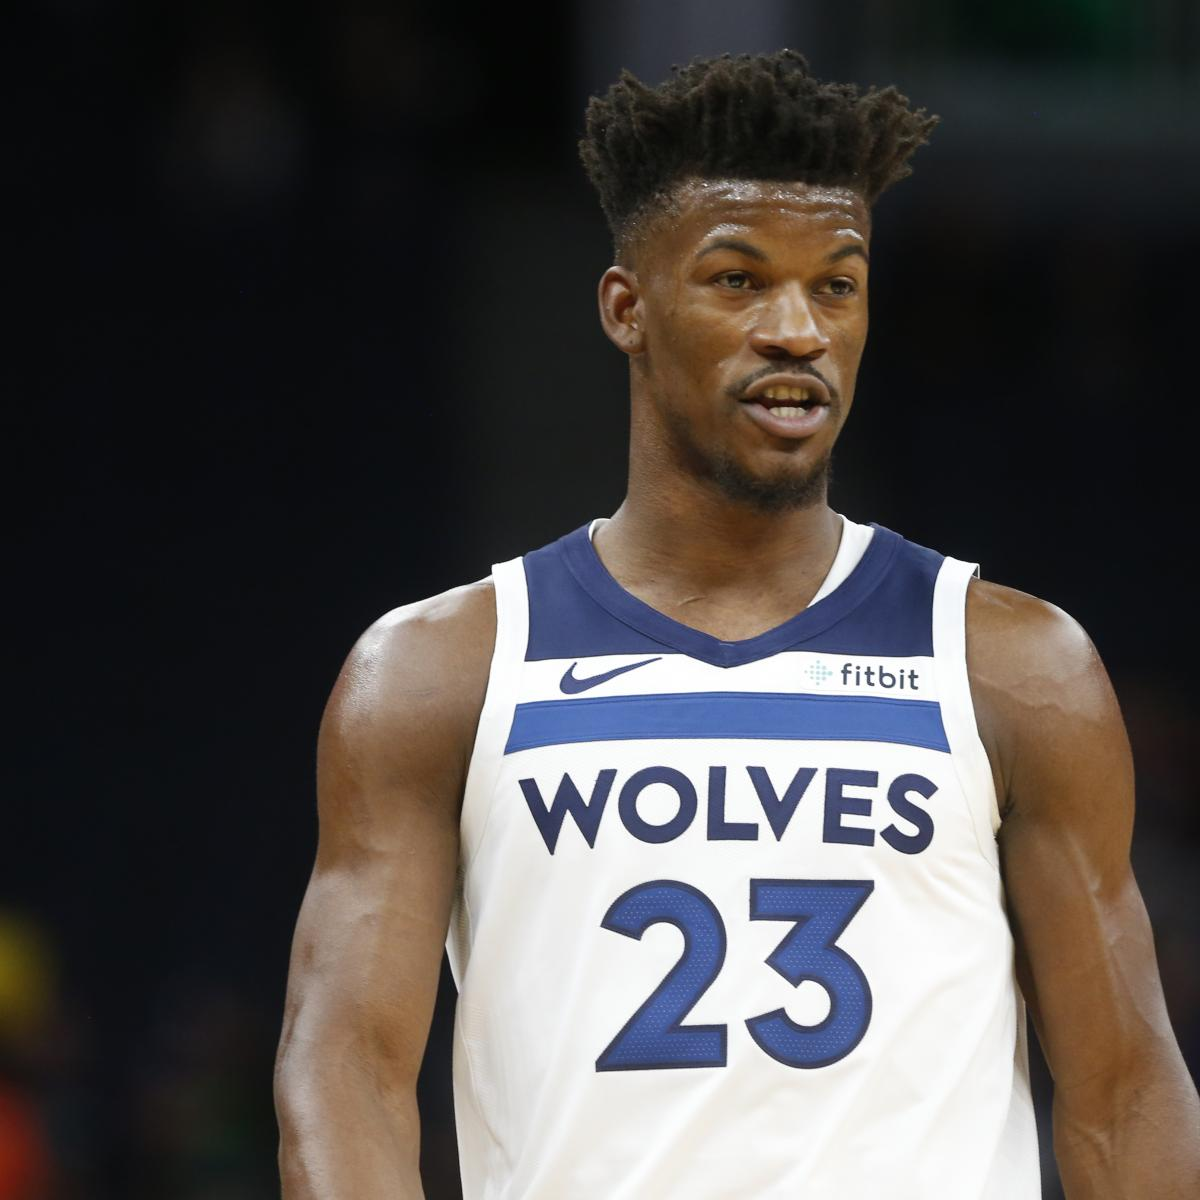 Warriors Come Out To Play Bleacher Report: Jimmy Butler To Play Vs. Warriors After Missing Jazz Game